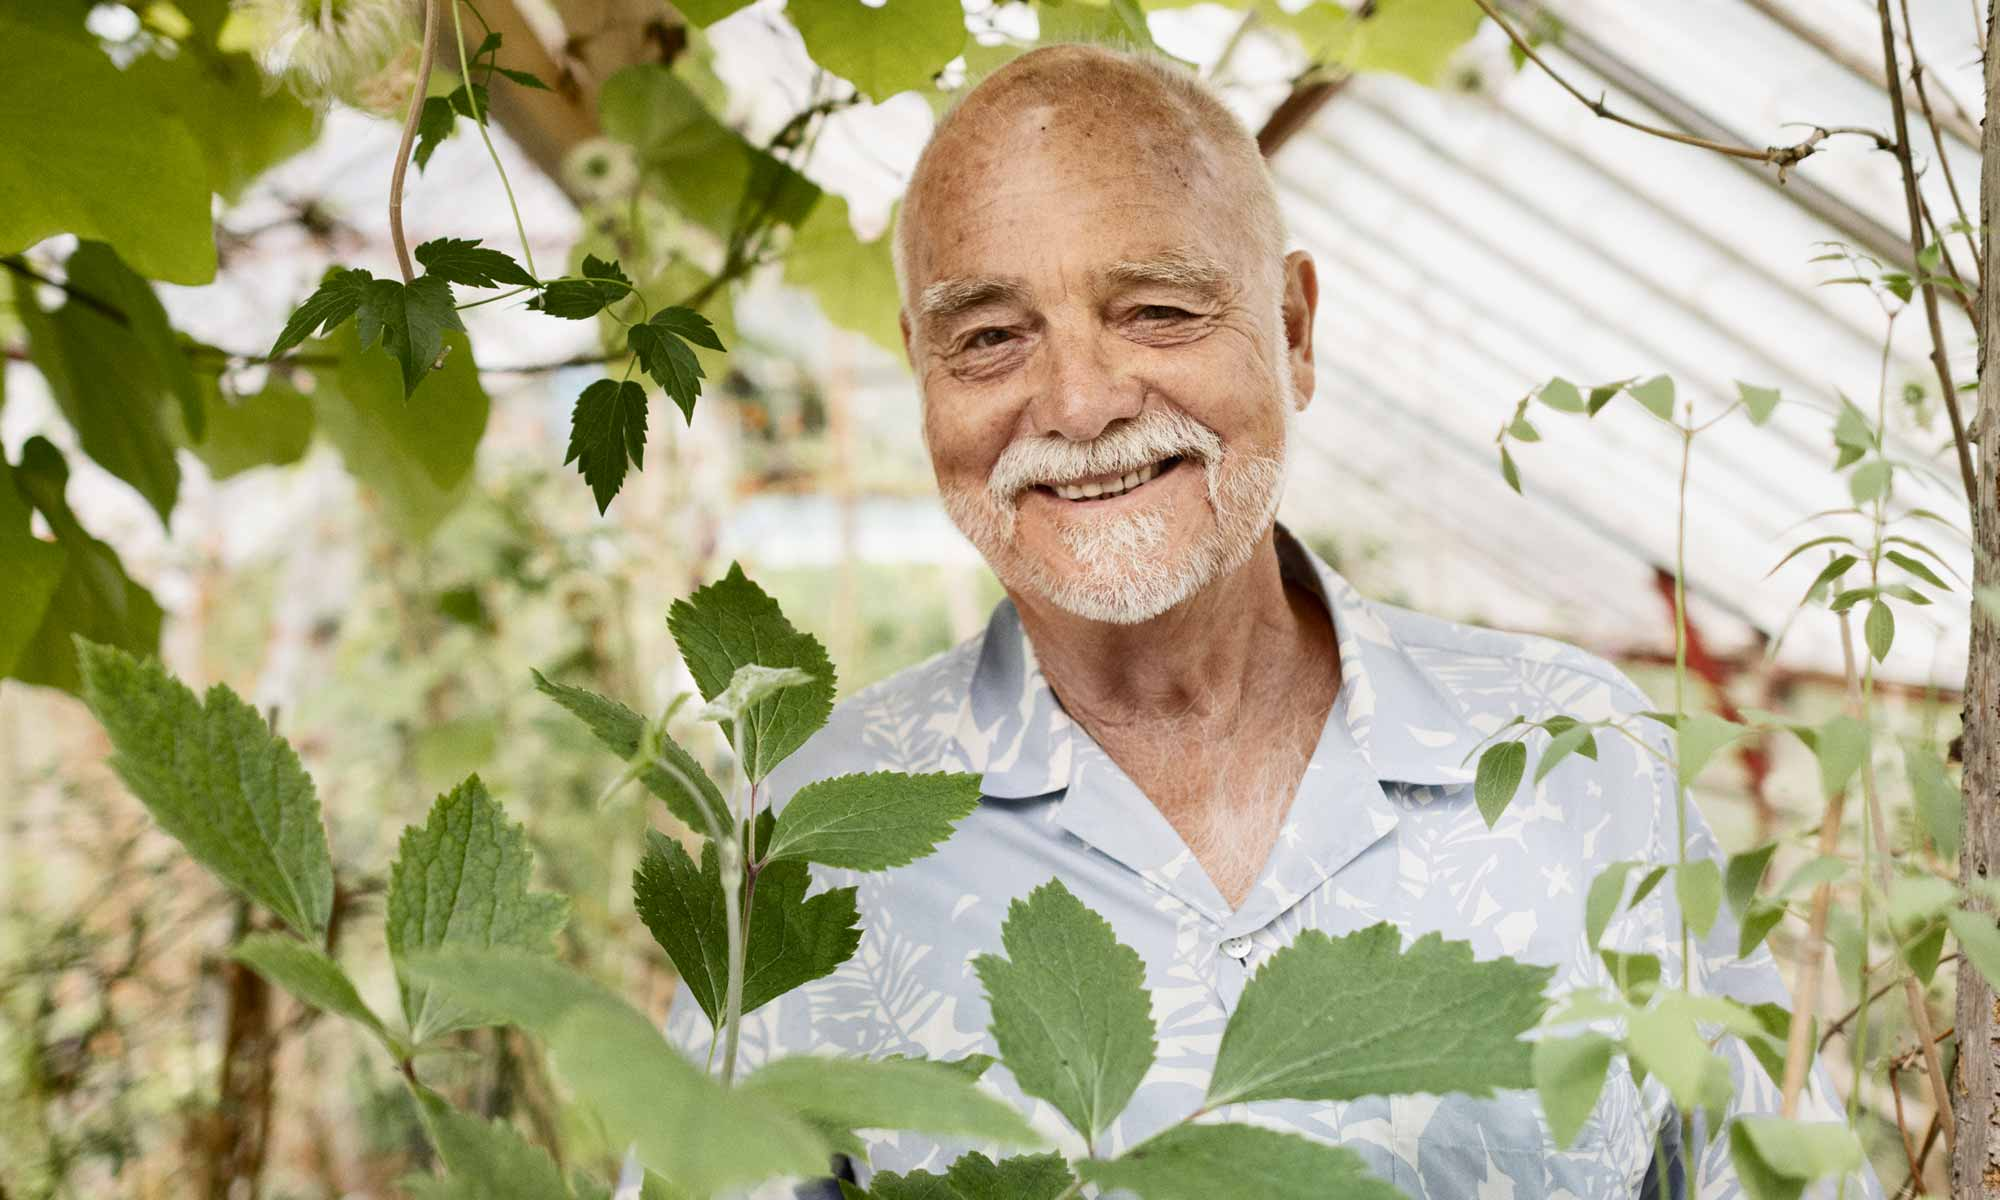 Senior man in greenhouse